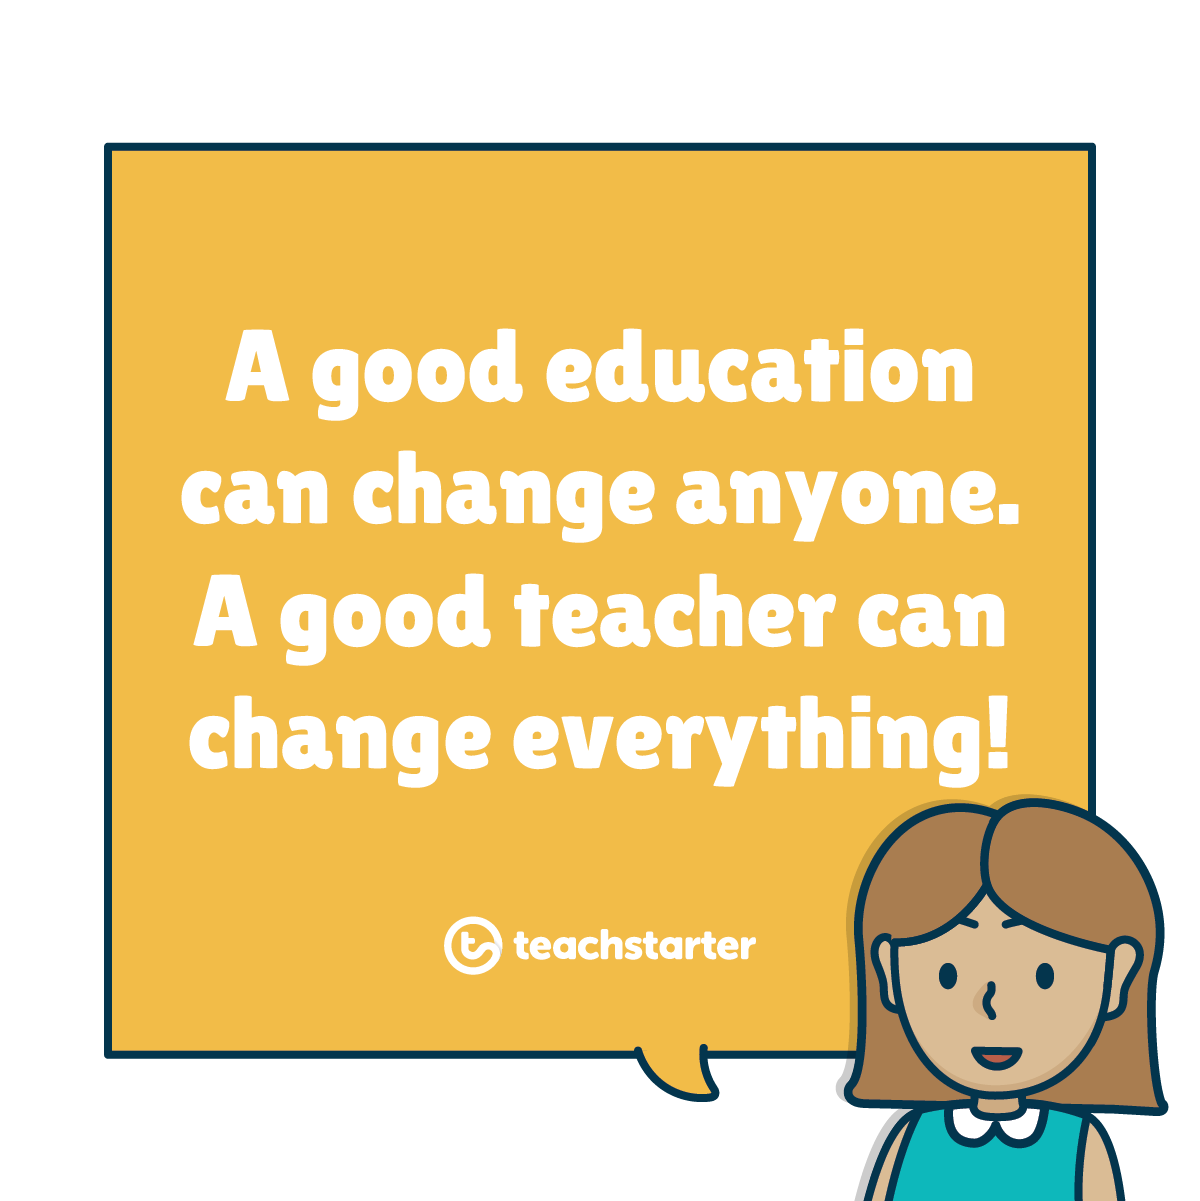 10 Inspirational Quotes For Teachers Beautiful Teacher Quotes Teacher Quotes Funny Motivational Quotes For Teachers Teacher Quotes Inspirational